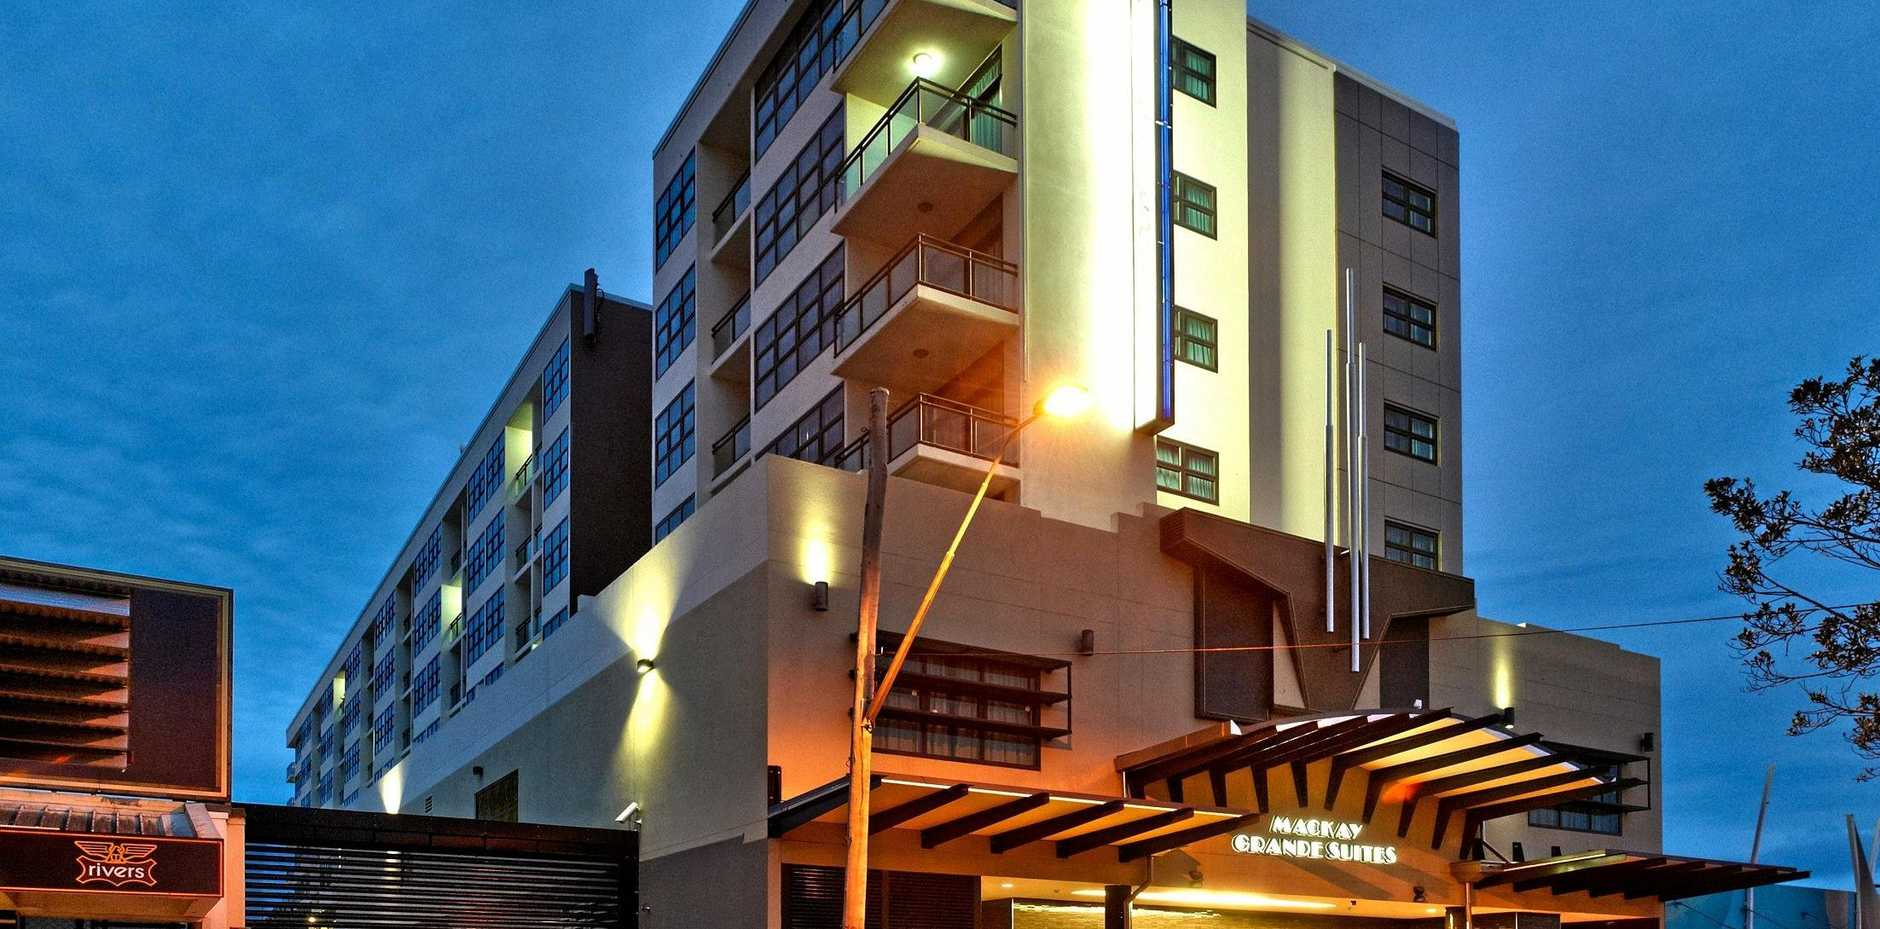 One of Mackay's busiest hotels and bar could have new owners by Christmas.